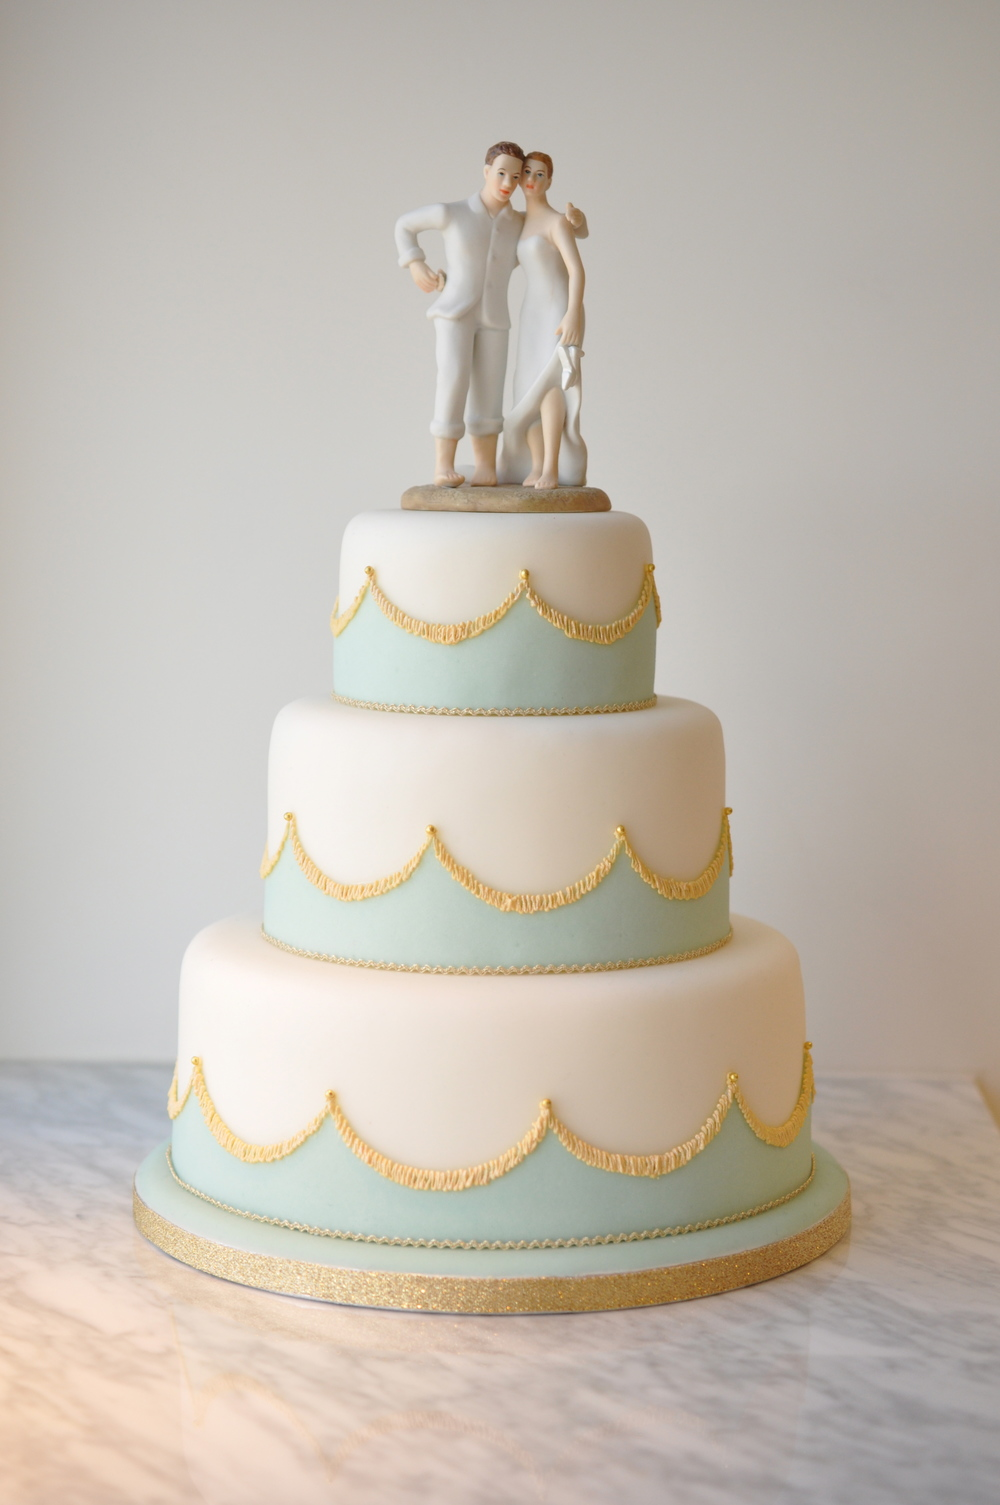 WEDDING CAKES - THE SURREY — ROSEY CONFECTIONERY SUGAR ART